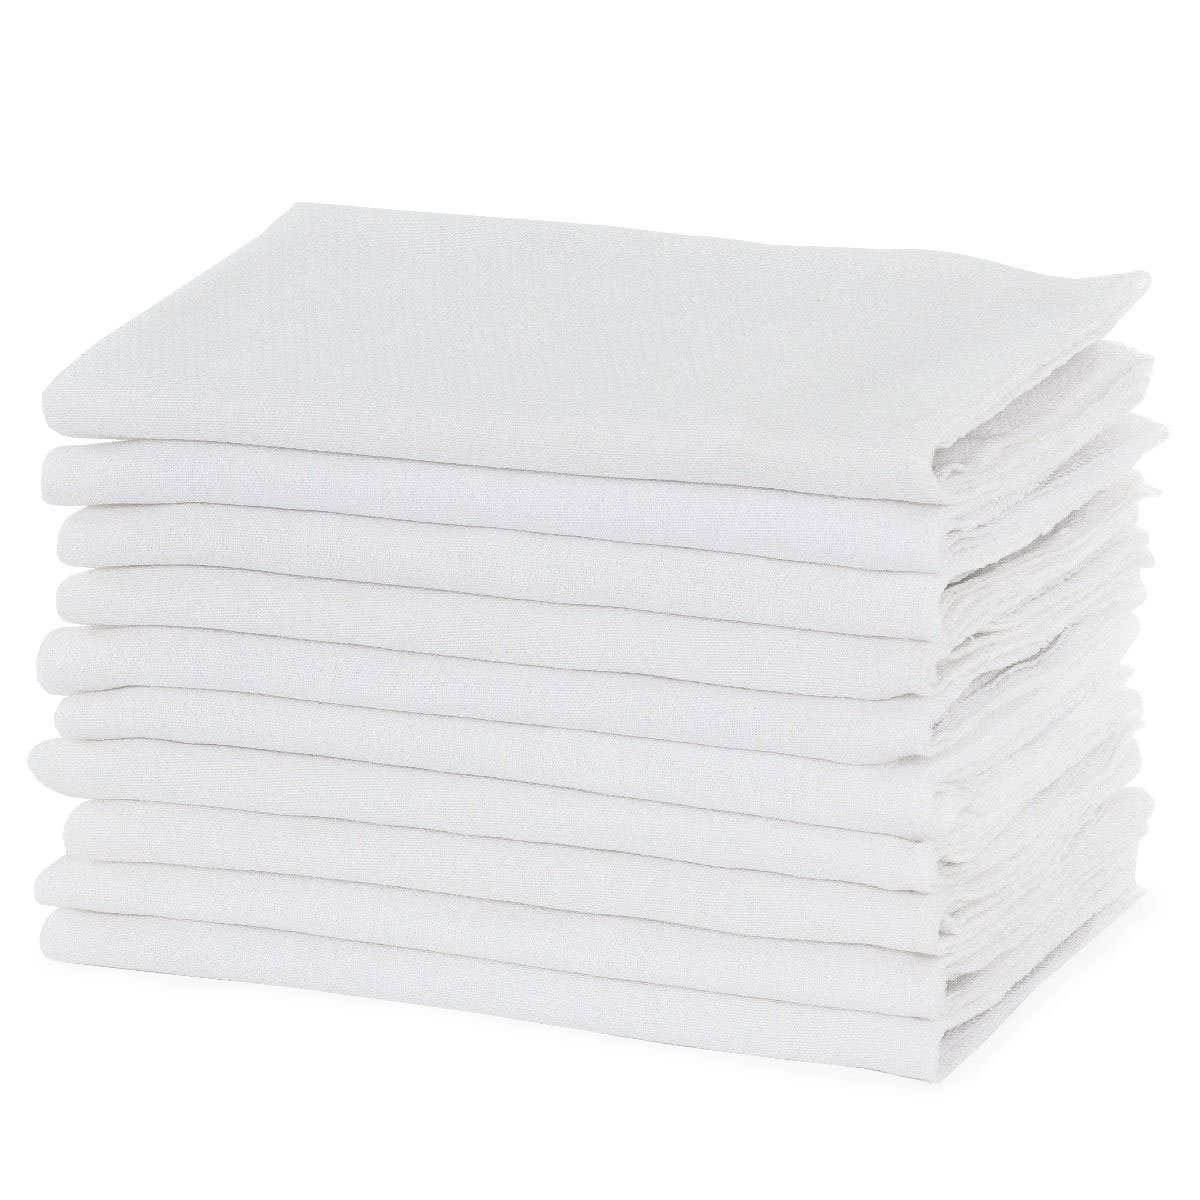 10 pack Flat Diapers